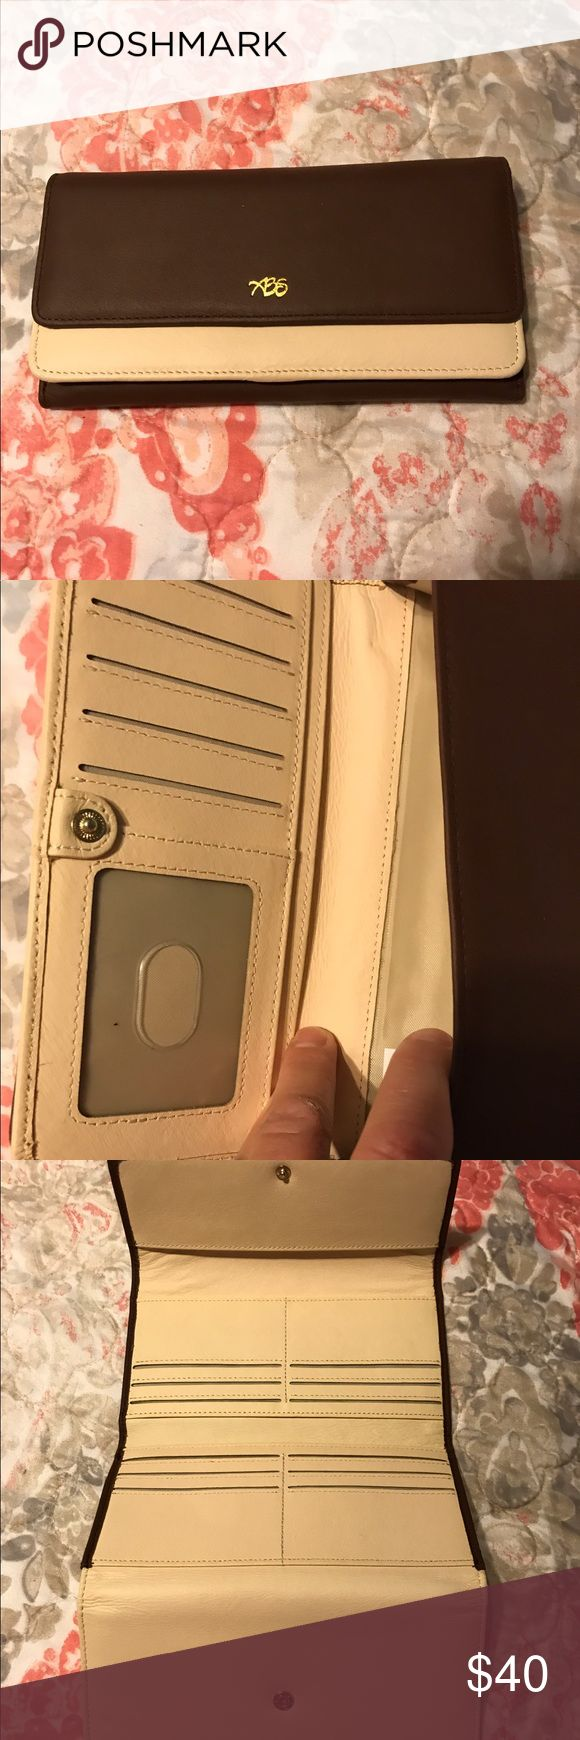 Women's wallet with multiple card slots Brown and tan multiple card slot clutch, always be secure, credit card numbers are protected,was purchased from QVC,still in the box always be secure Bags Wallets